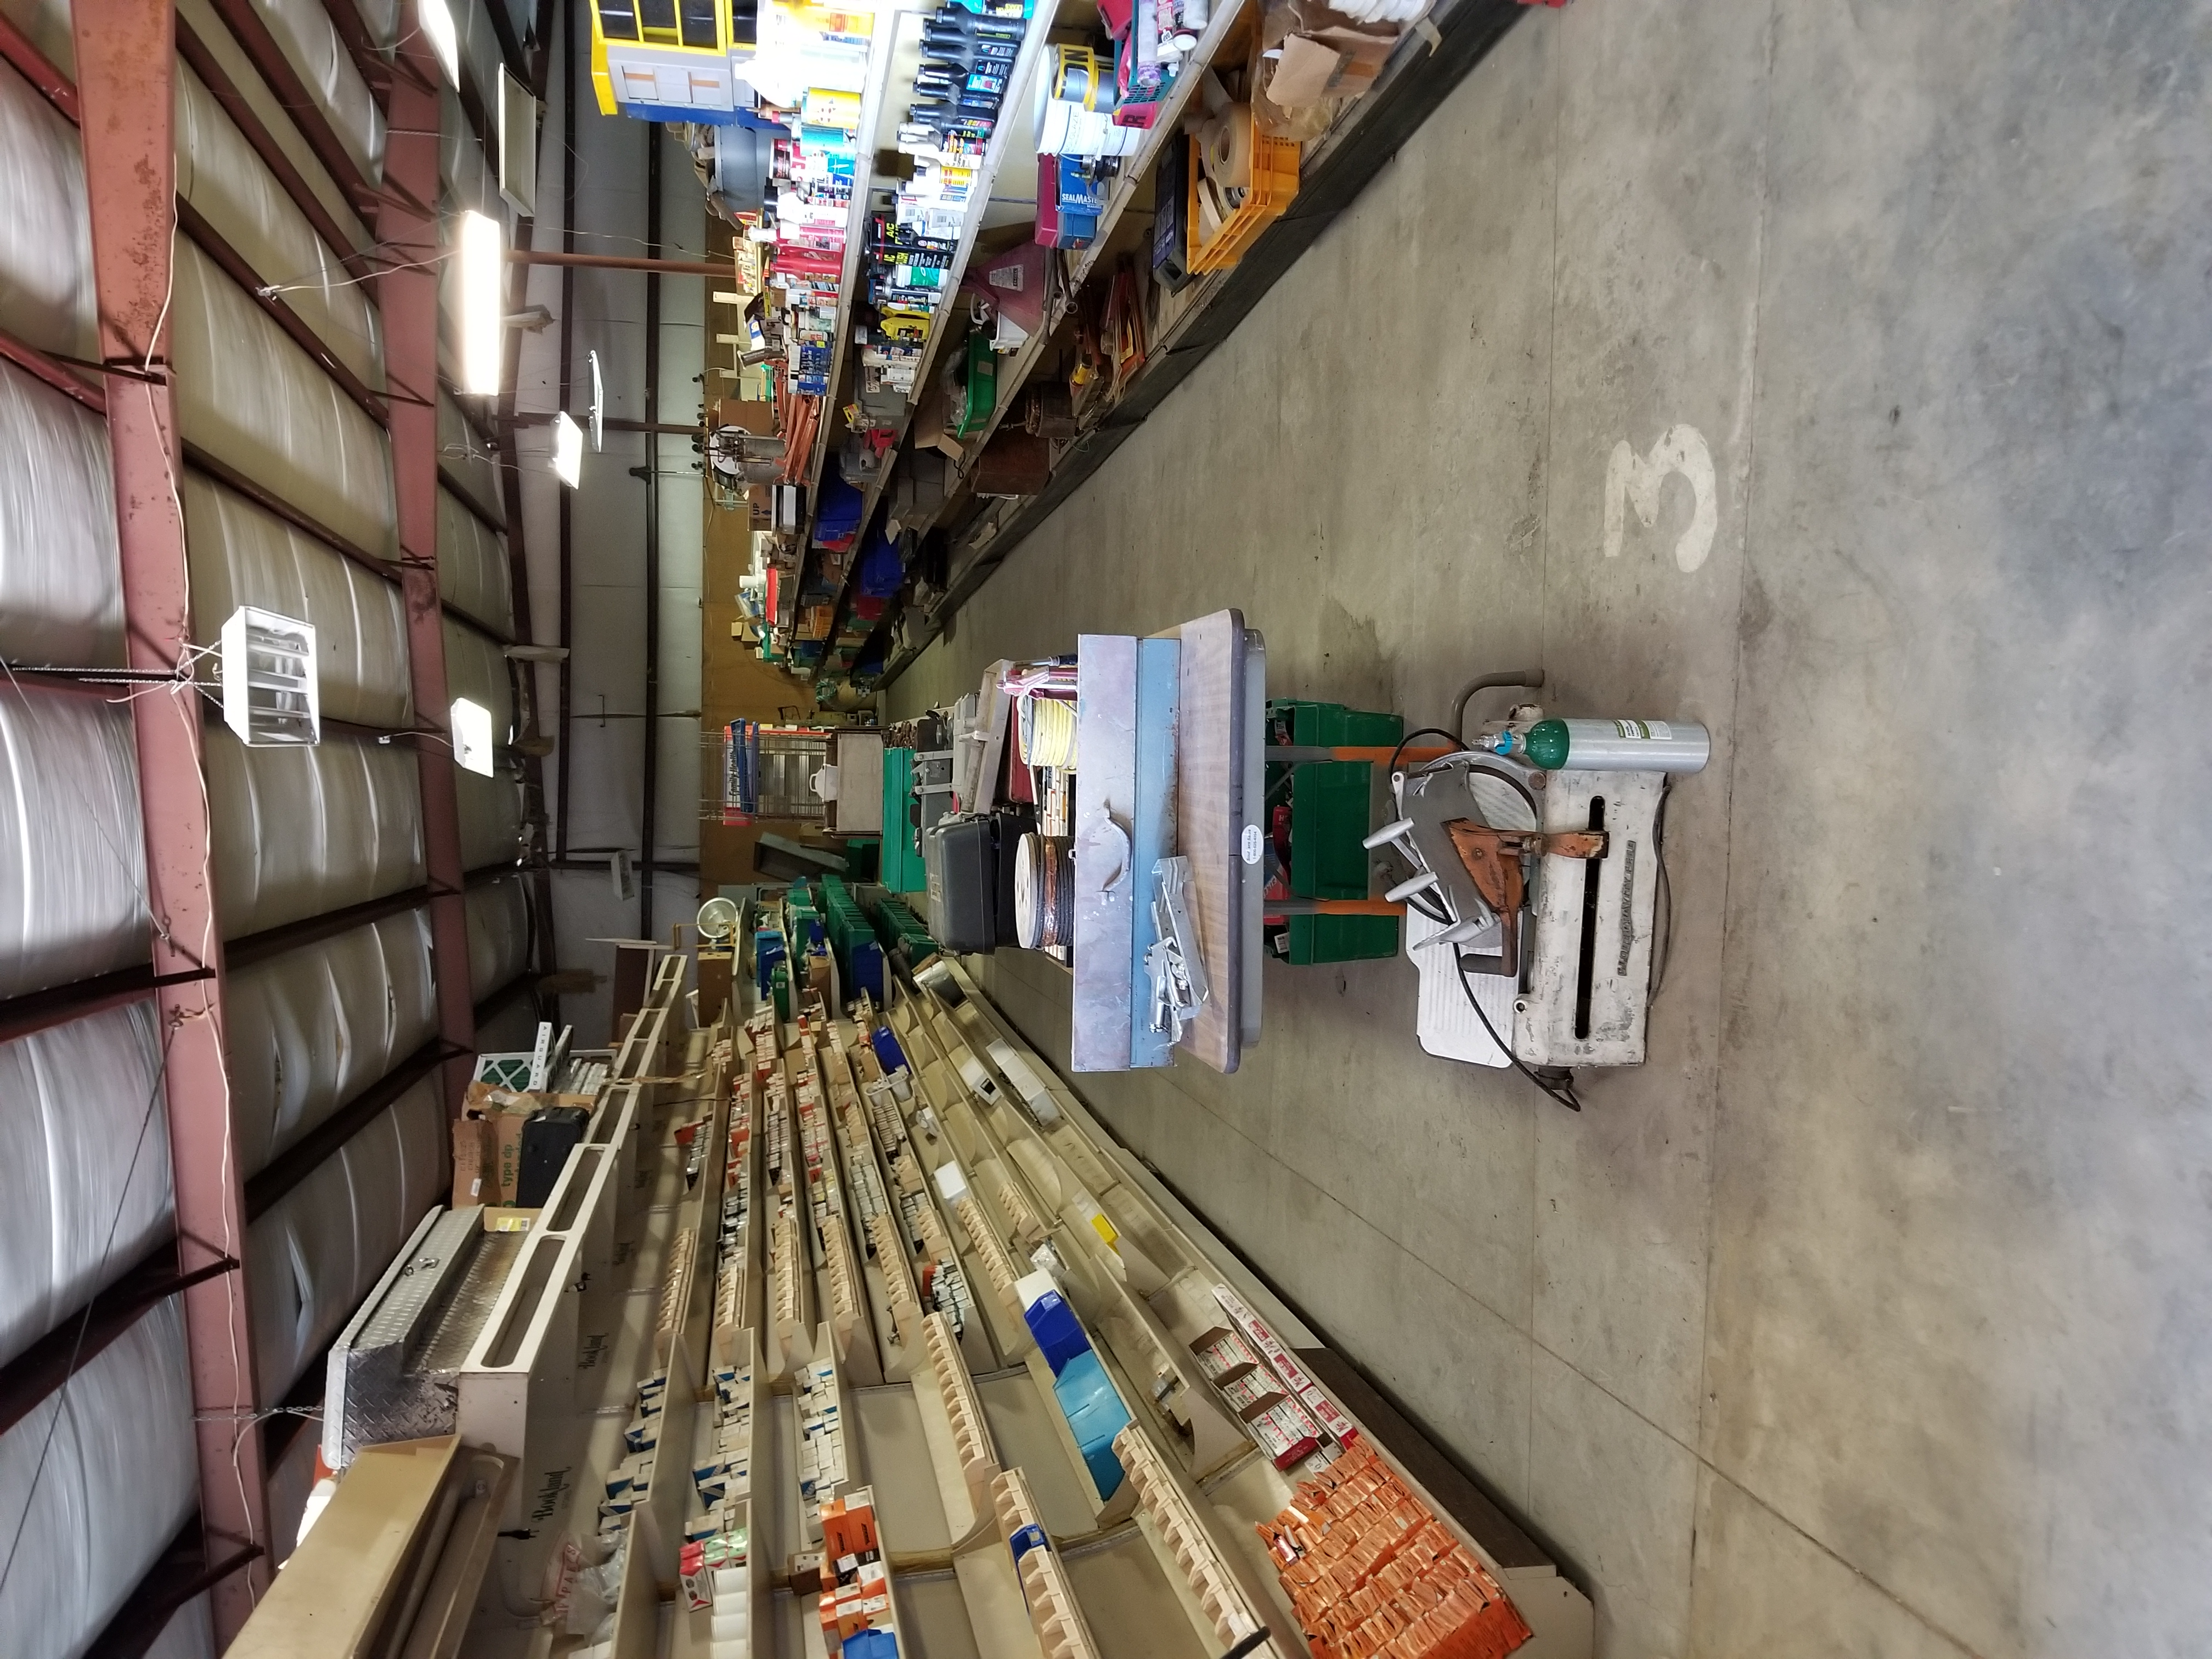 Aisle of Inventory (3)